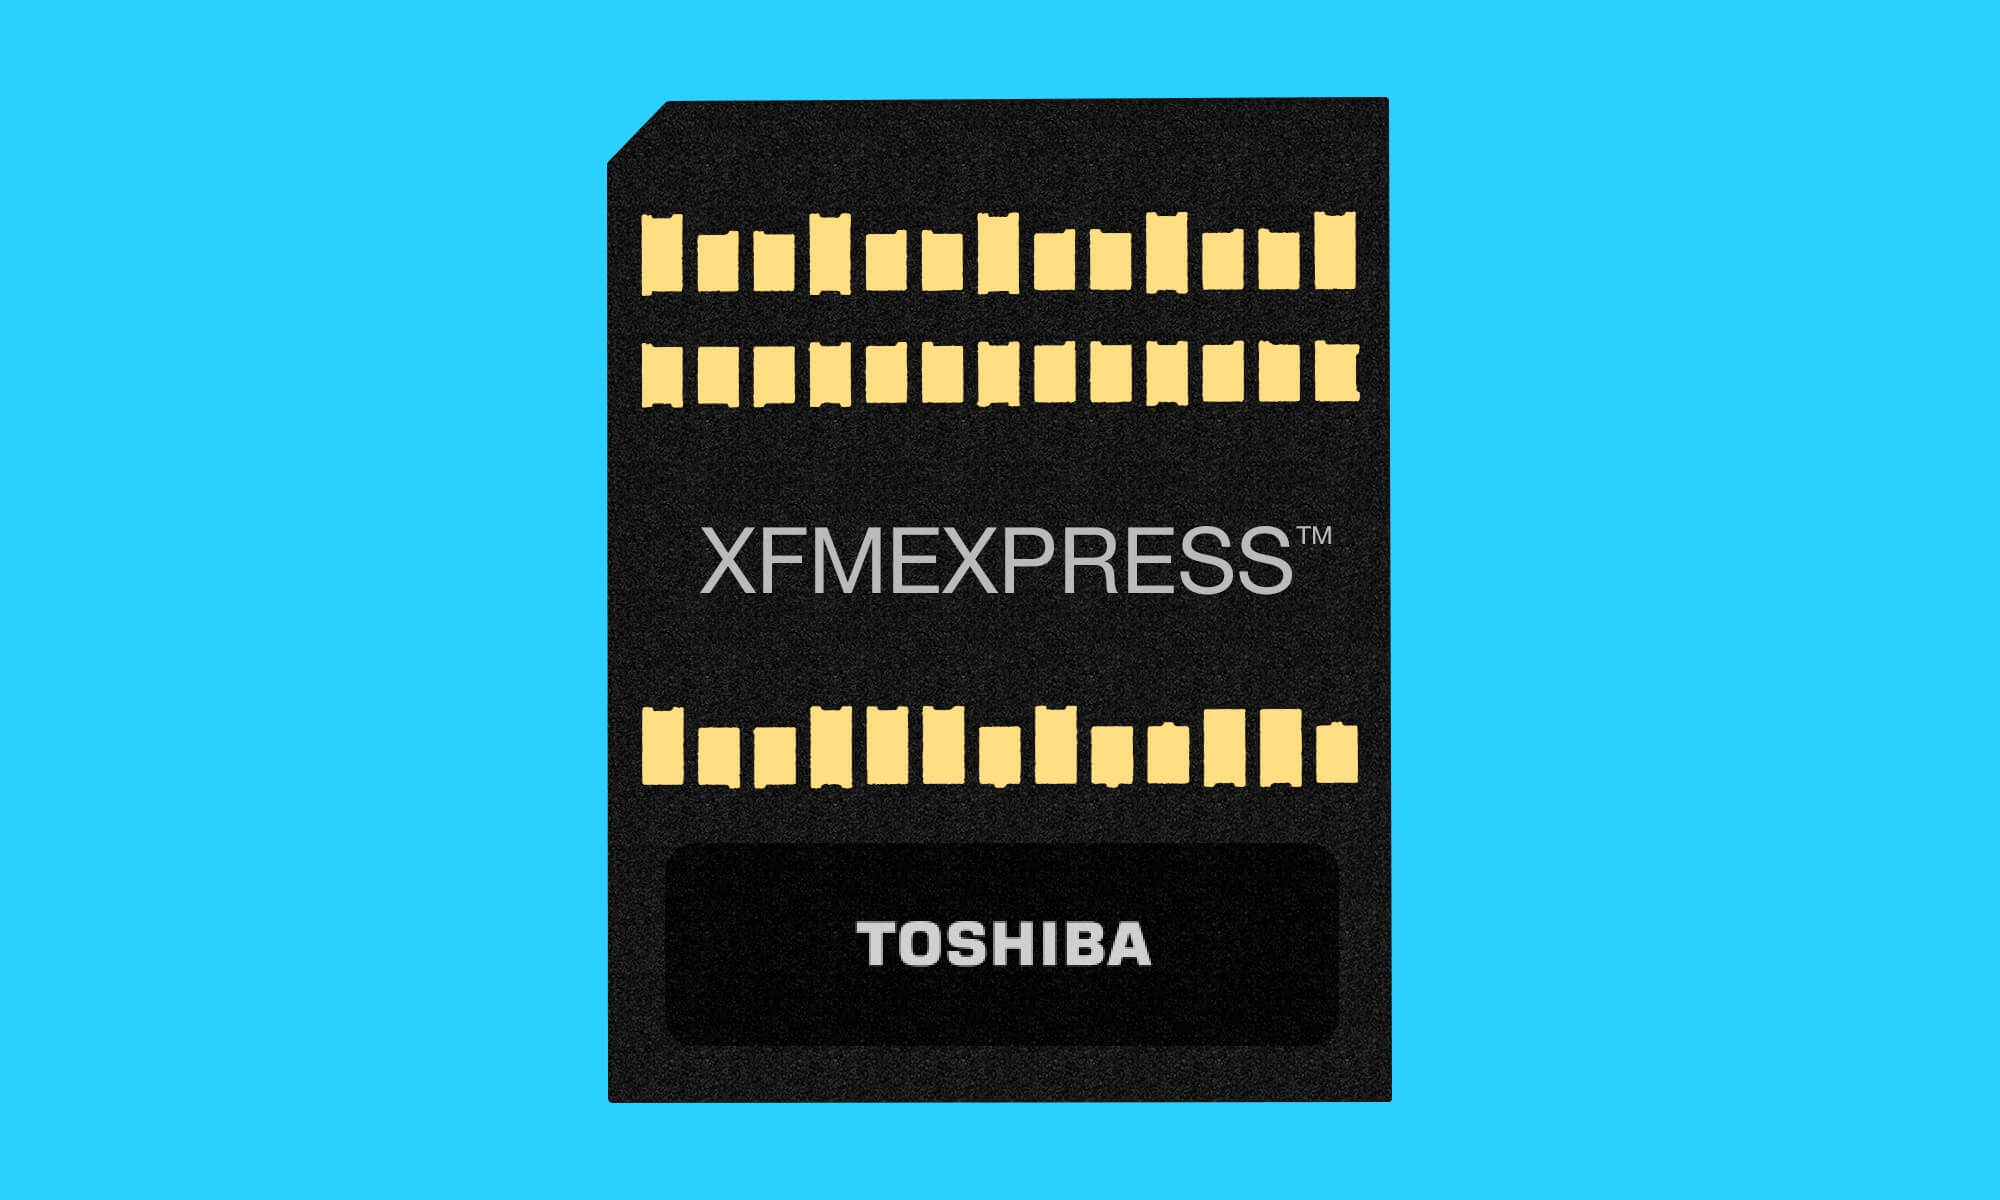 XFMExpress